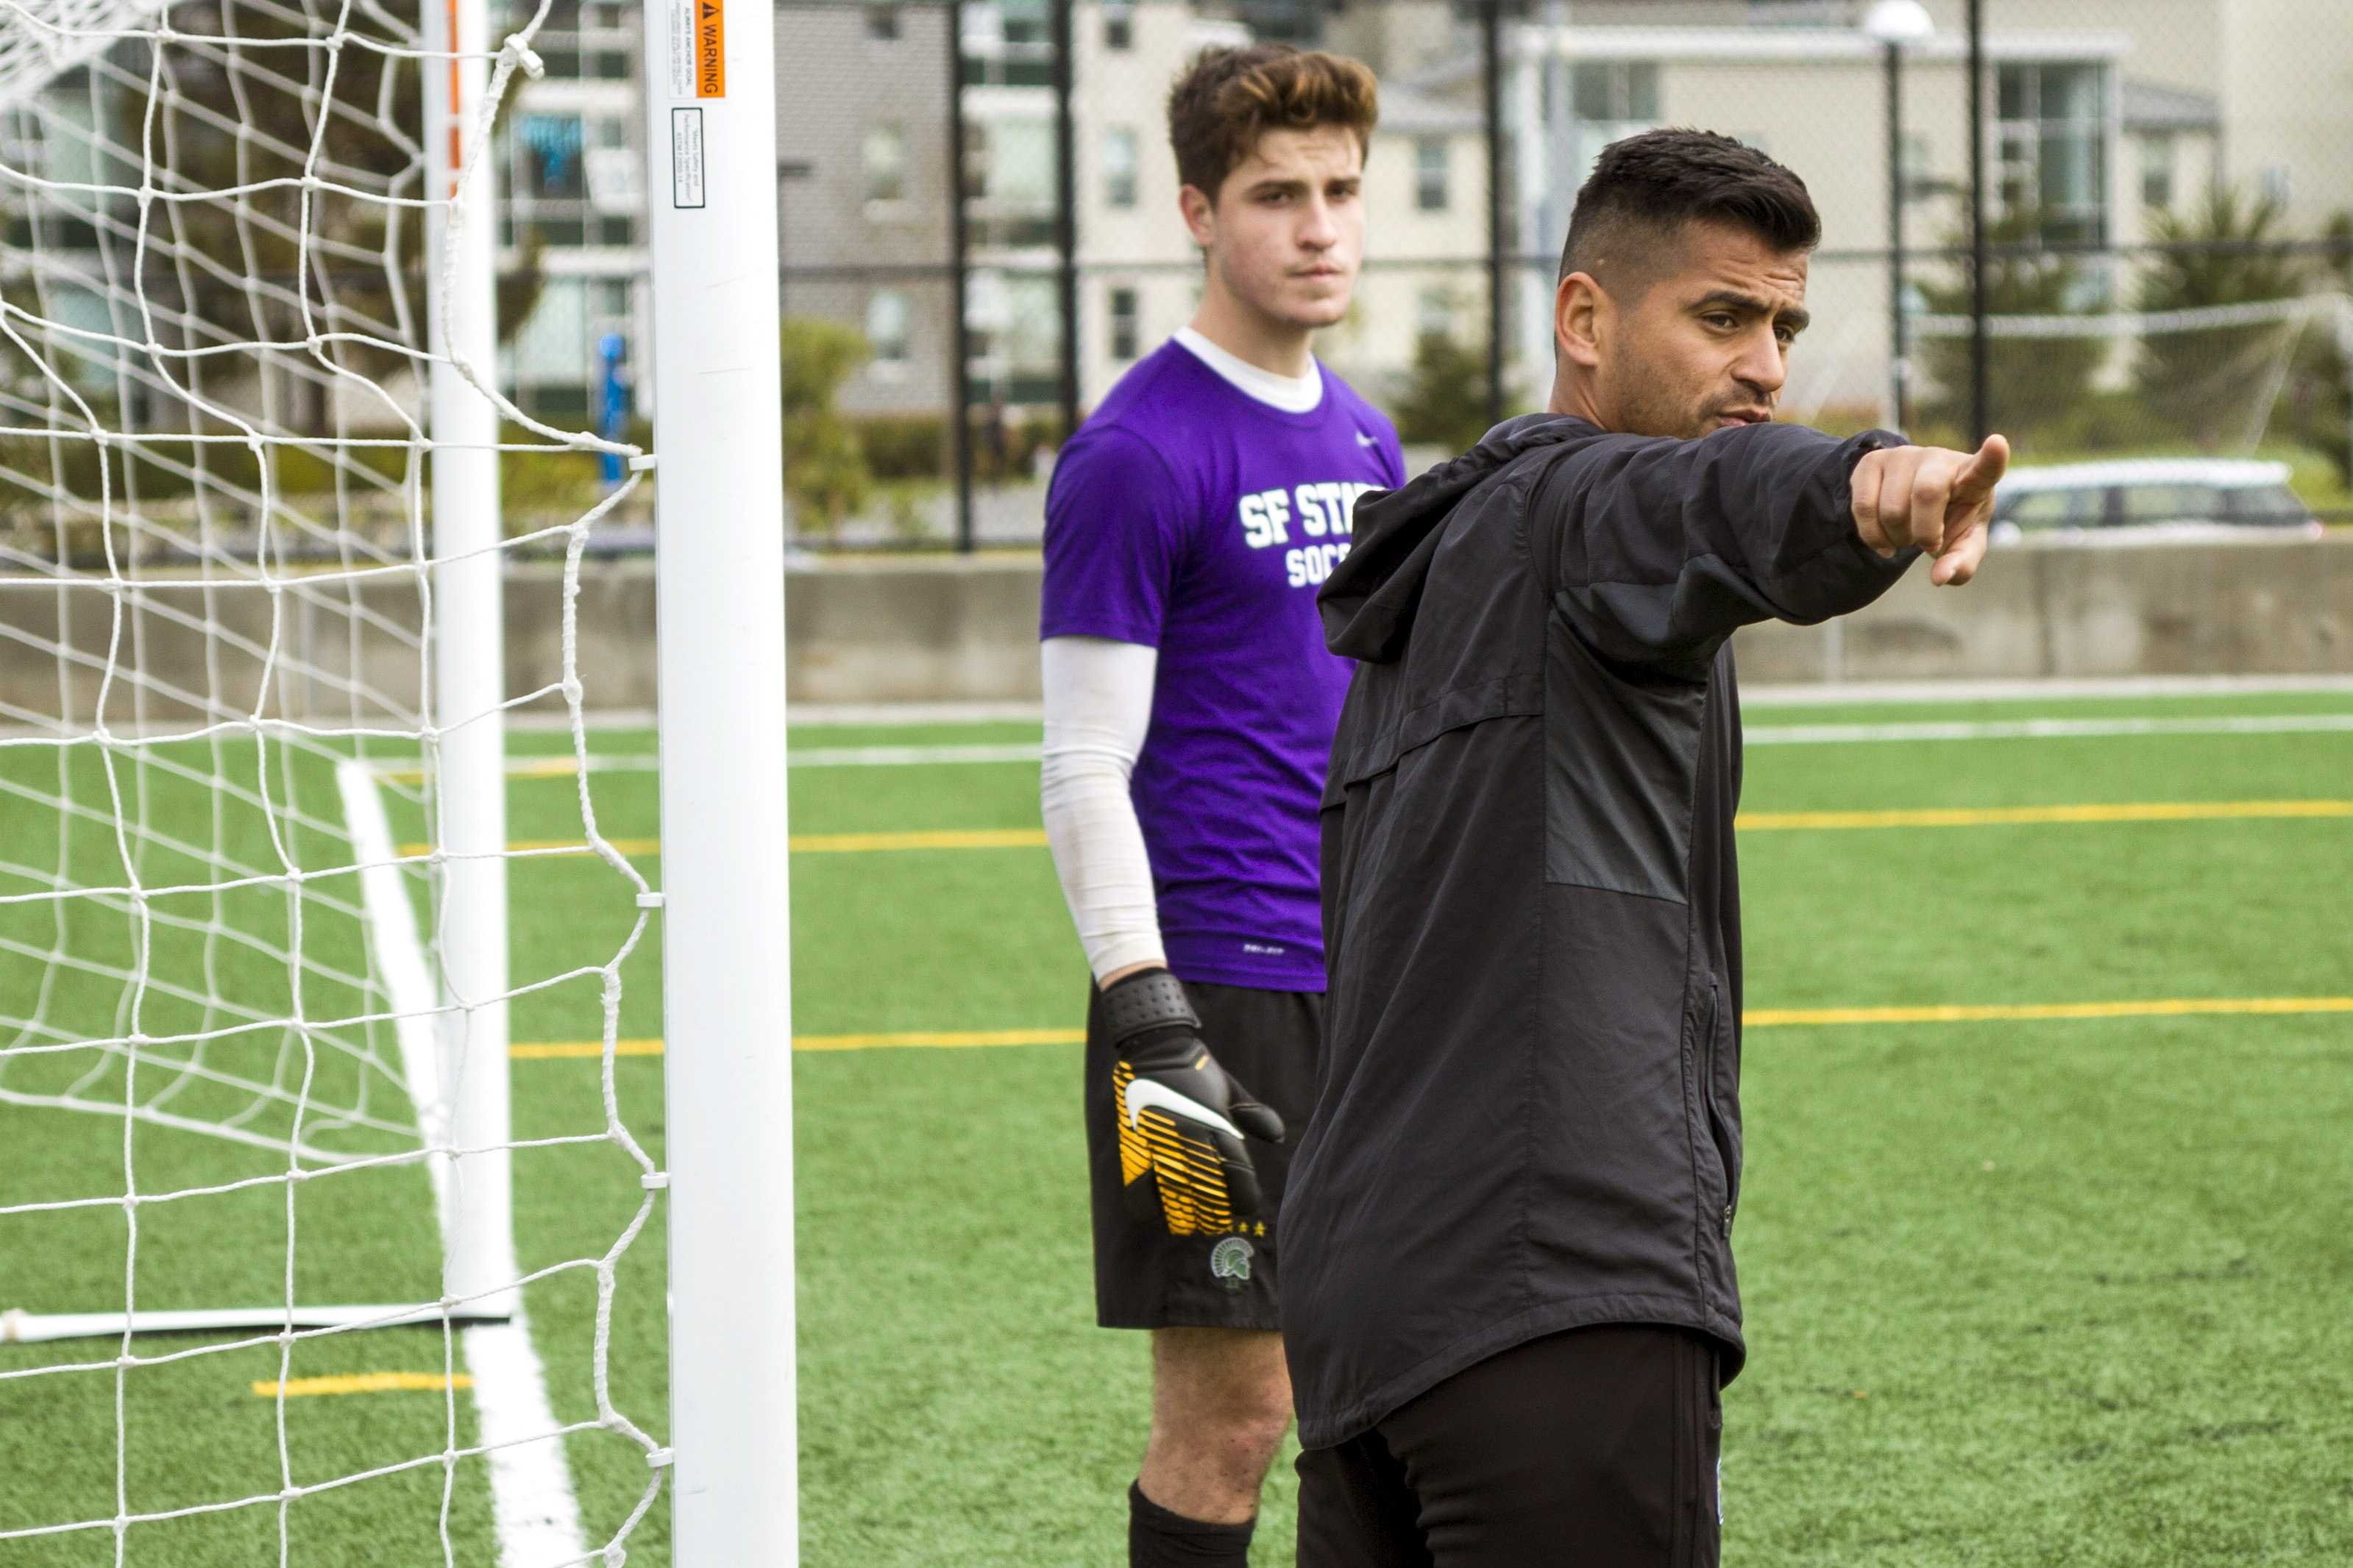 Head Coach Javier Ayala-Hil,right, works with goalkeeper Erik Ornelas, left, in between corner kicks at the Men's Soccer practice at SF State on Friday, Mar. 2, 2018. (Joey Vangsness/Golden Gate Xpress)